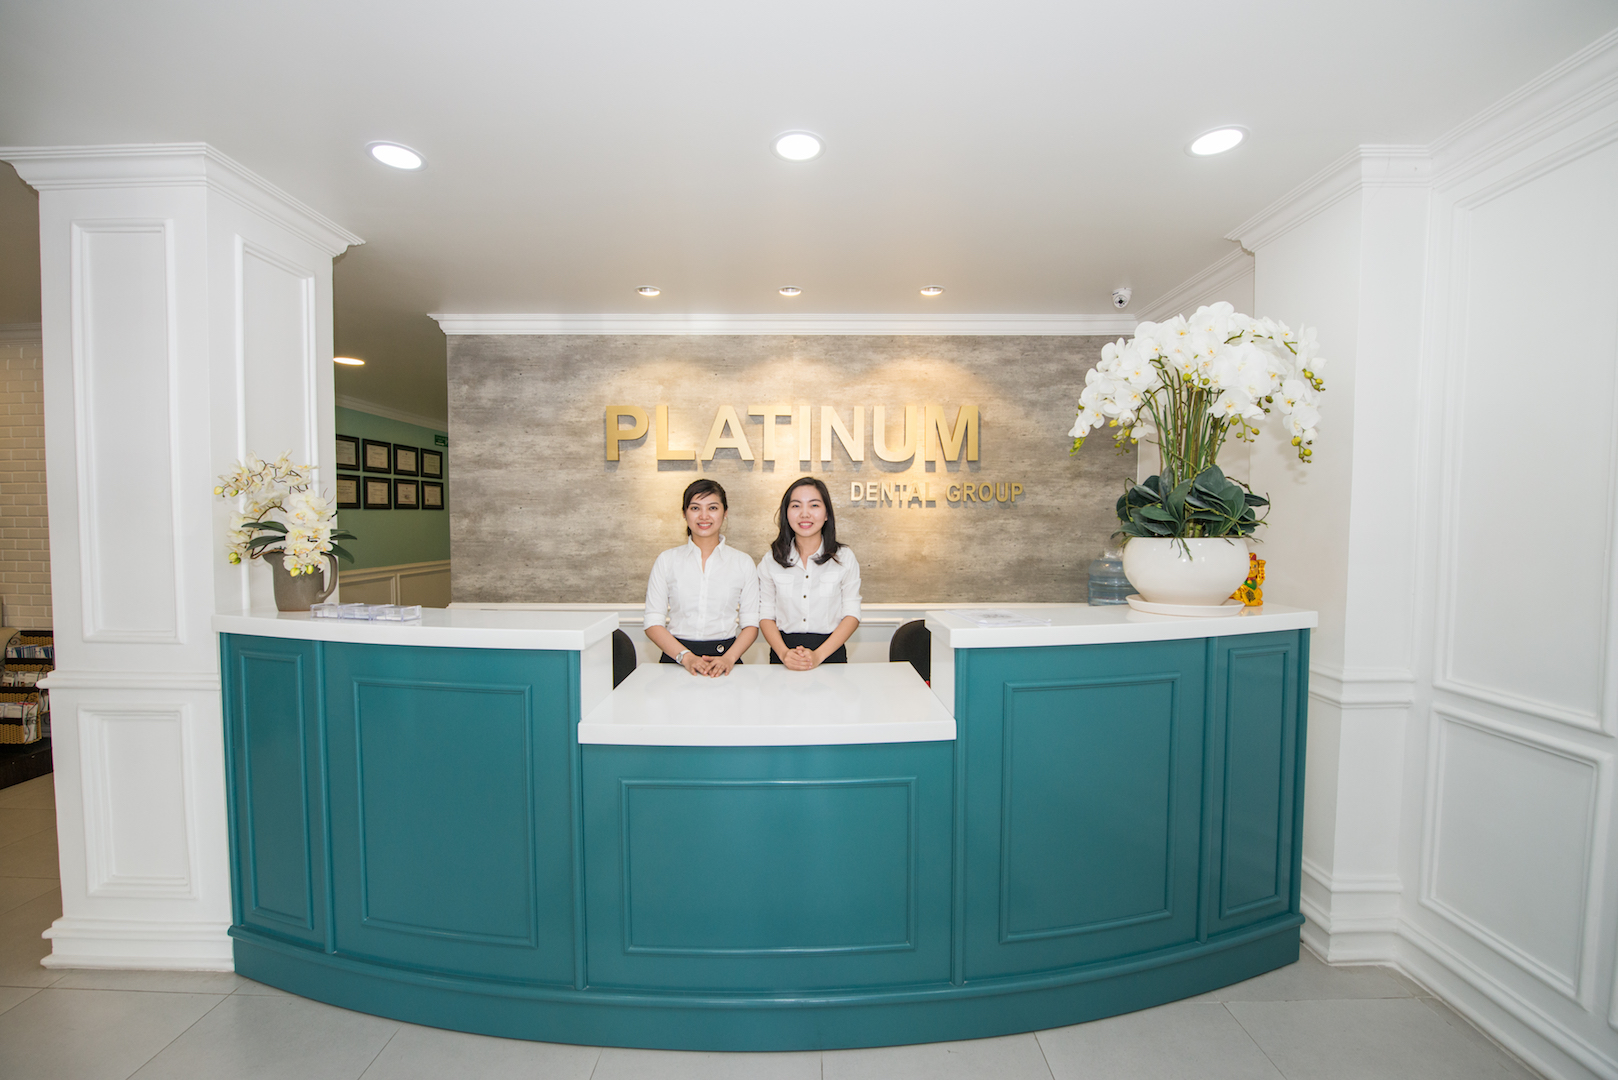 Platinum Dental Group - Vietnam Clinic in Ho Chi Minh City